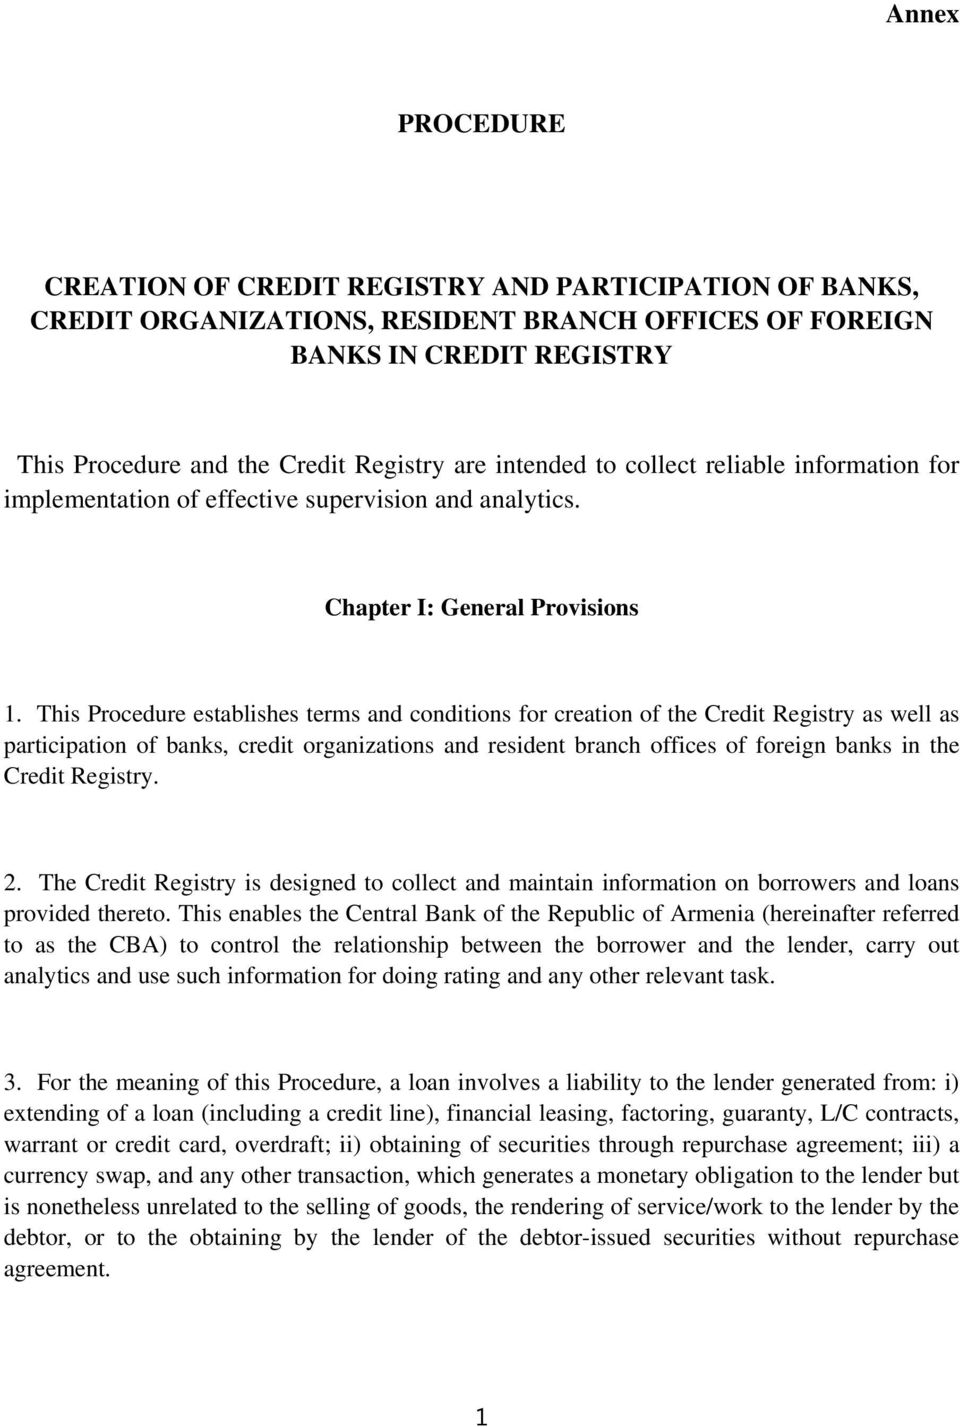 This Procedure establishes terms and conditions for creation of the Credit Registry as well as participation of banks, credit organizations and resident branch offices of foreign banks in the Credit